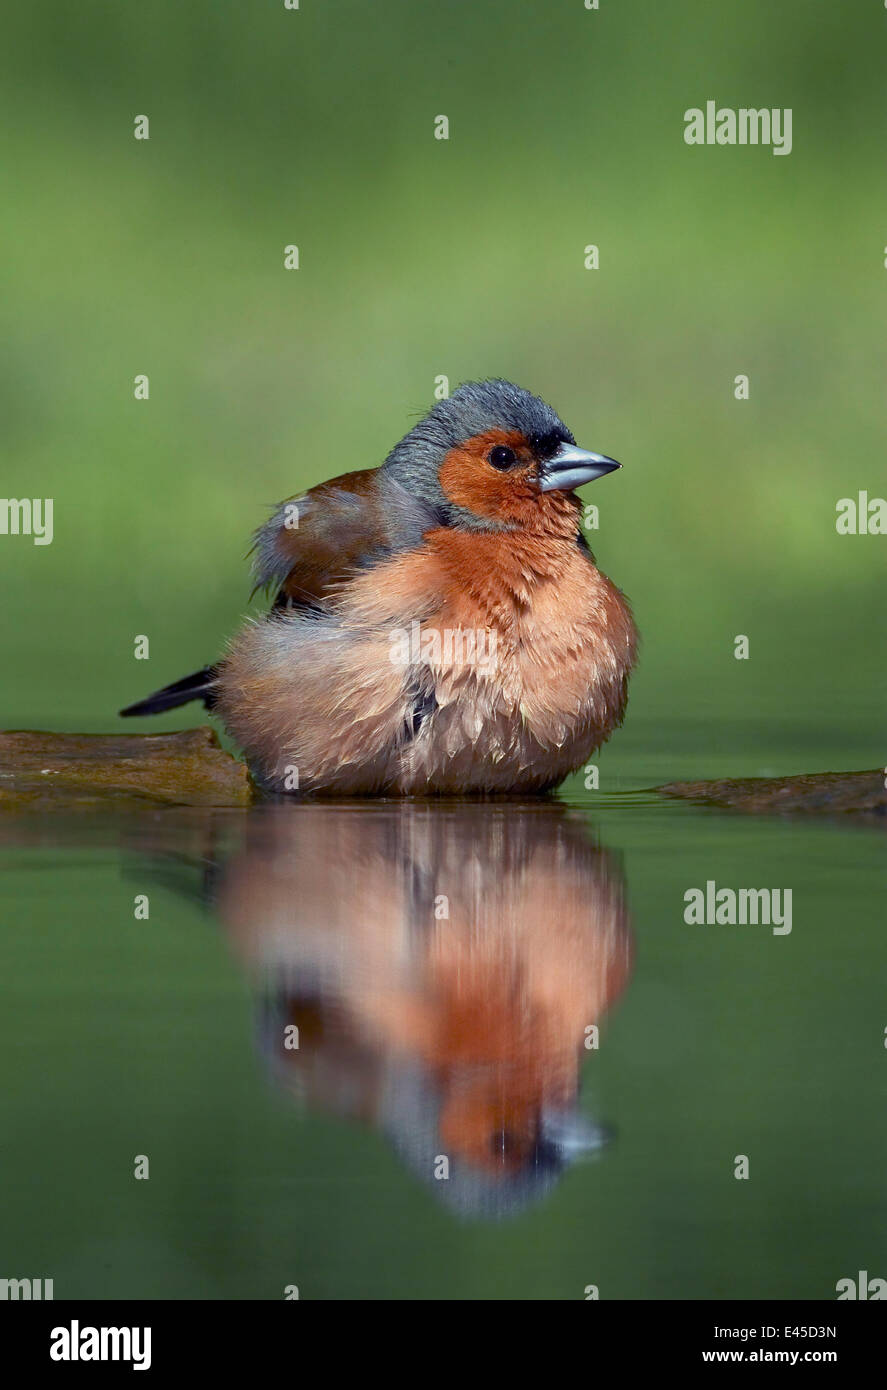 Chaffinch (Fringilla coelebs) male bathing, Pusztaszer, Hungary, May 2008 - Stock Image